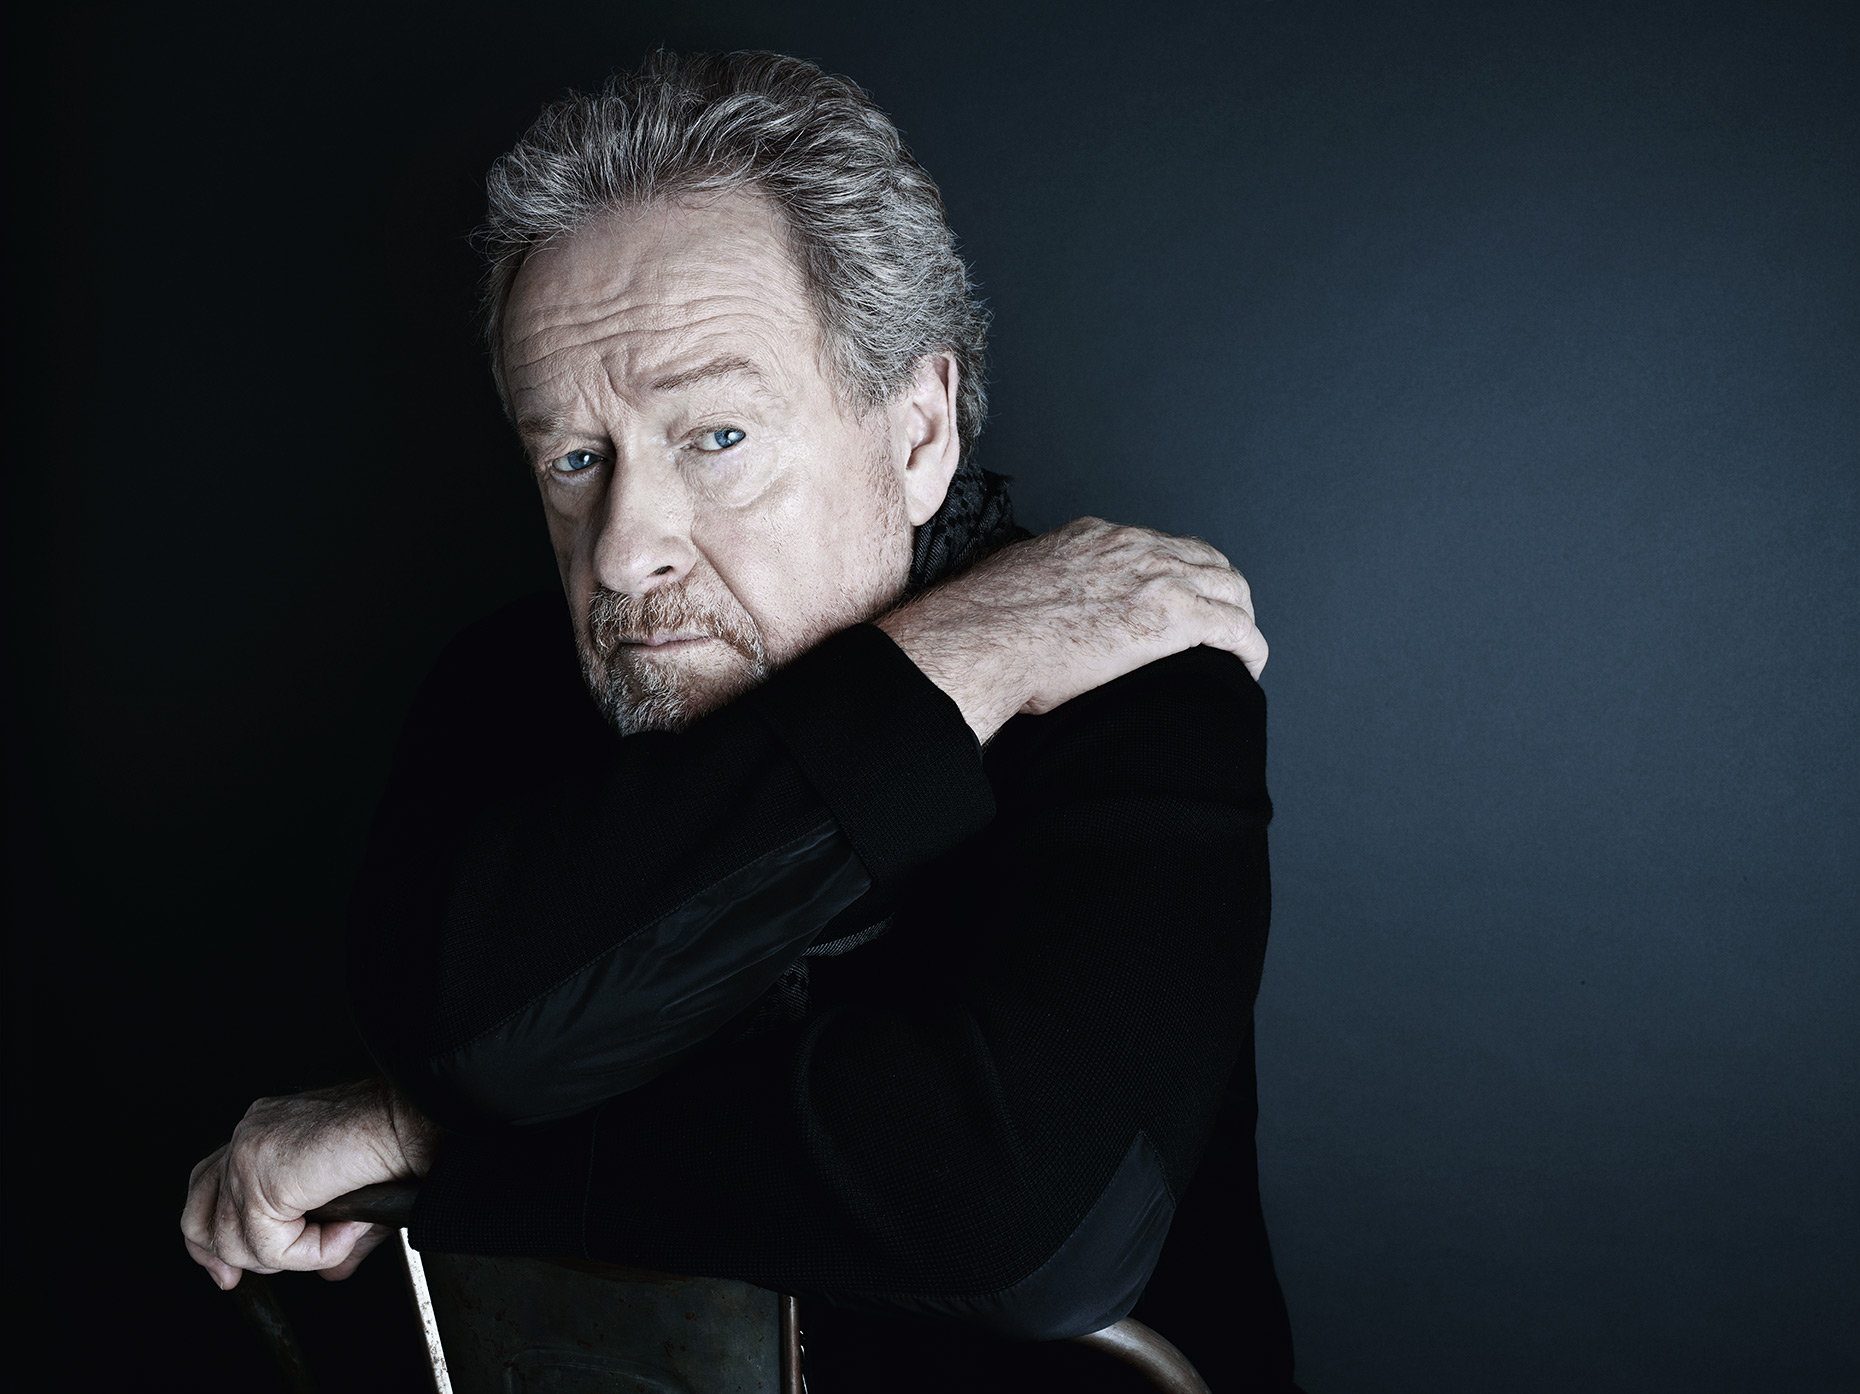 Sir Ridley Scott, Director & Producer